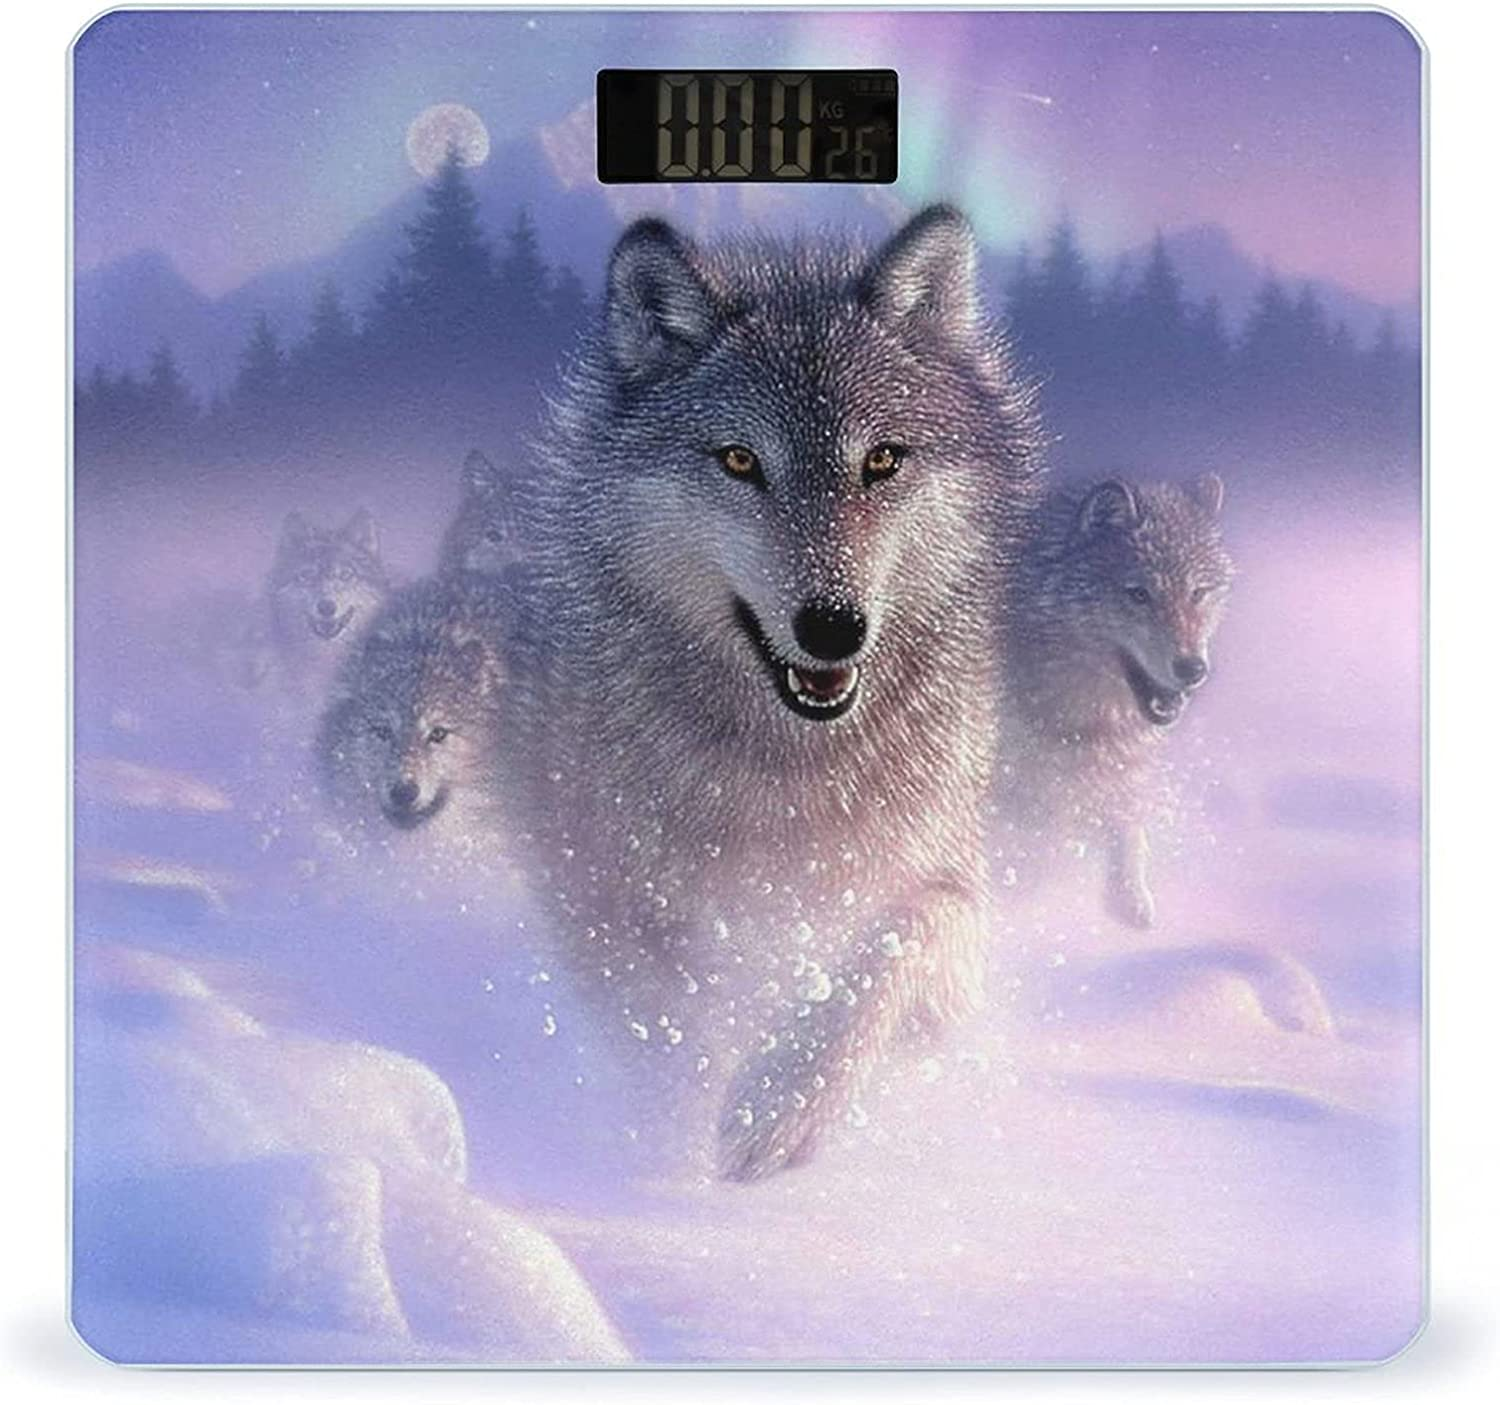 Wolf Running in Snow Highly Fitness Accurate Smart Scale NEW Weight Recommended